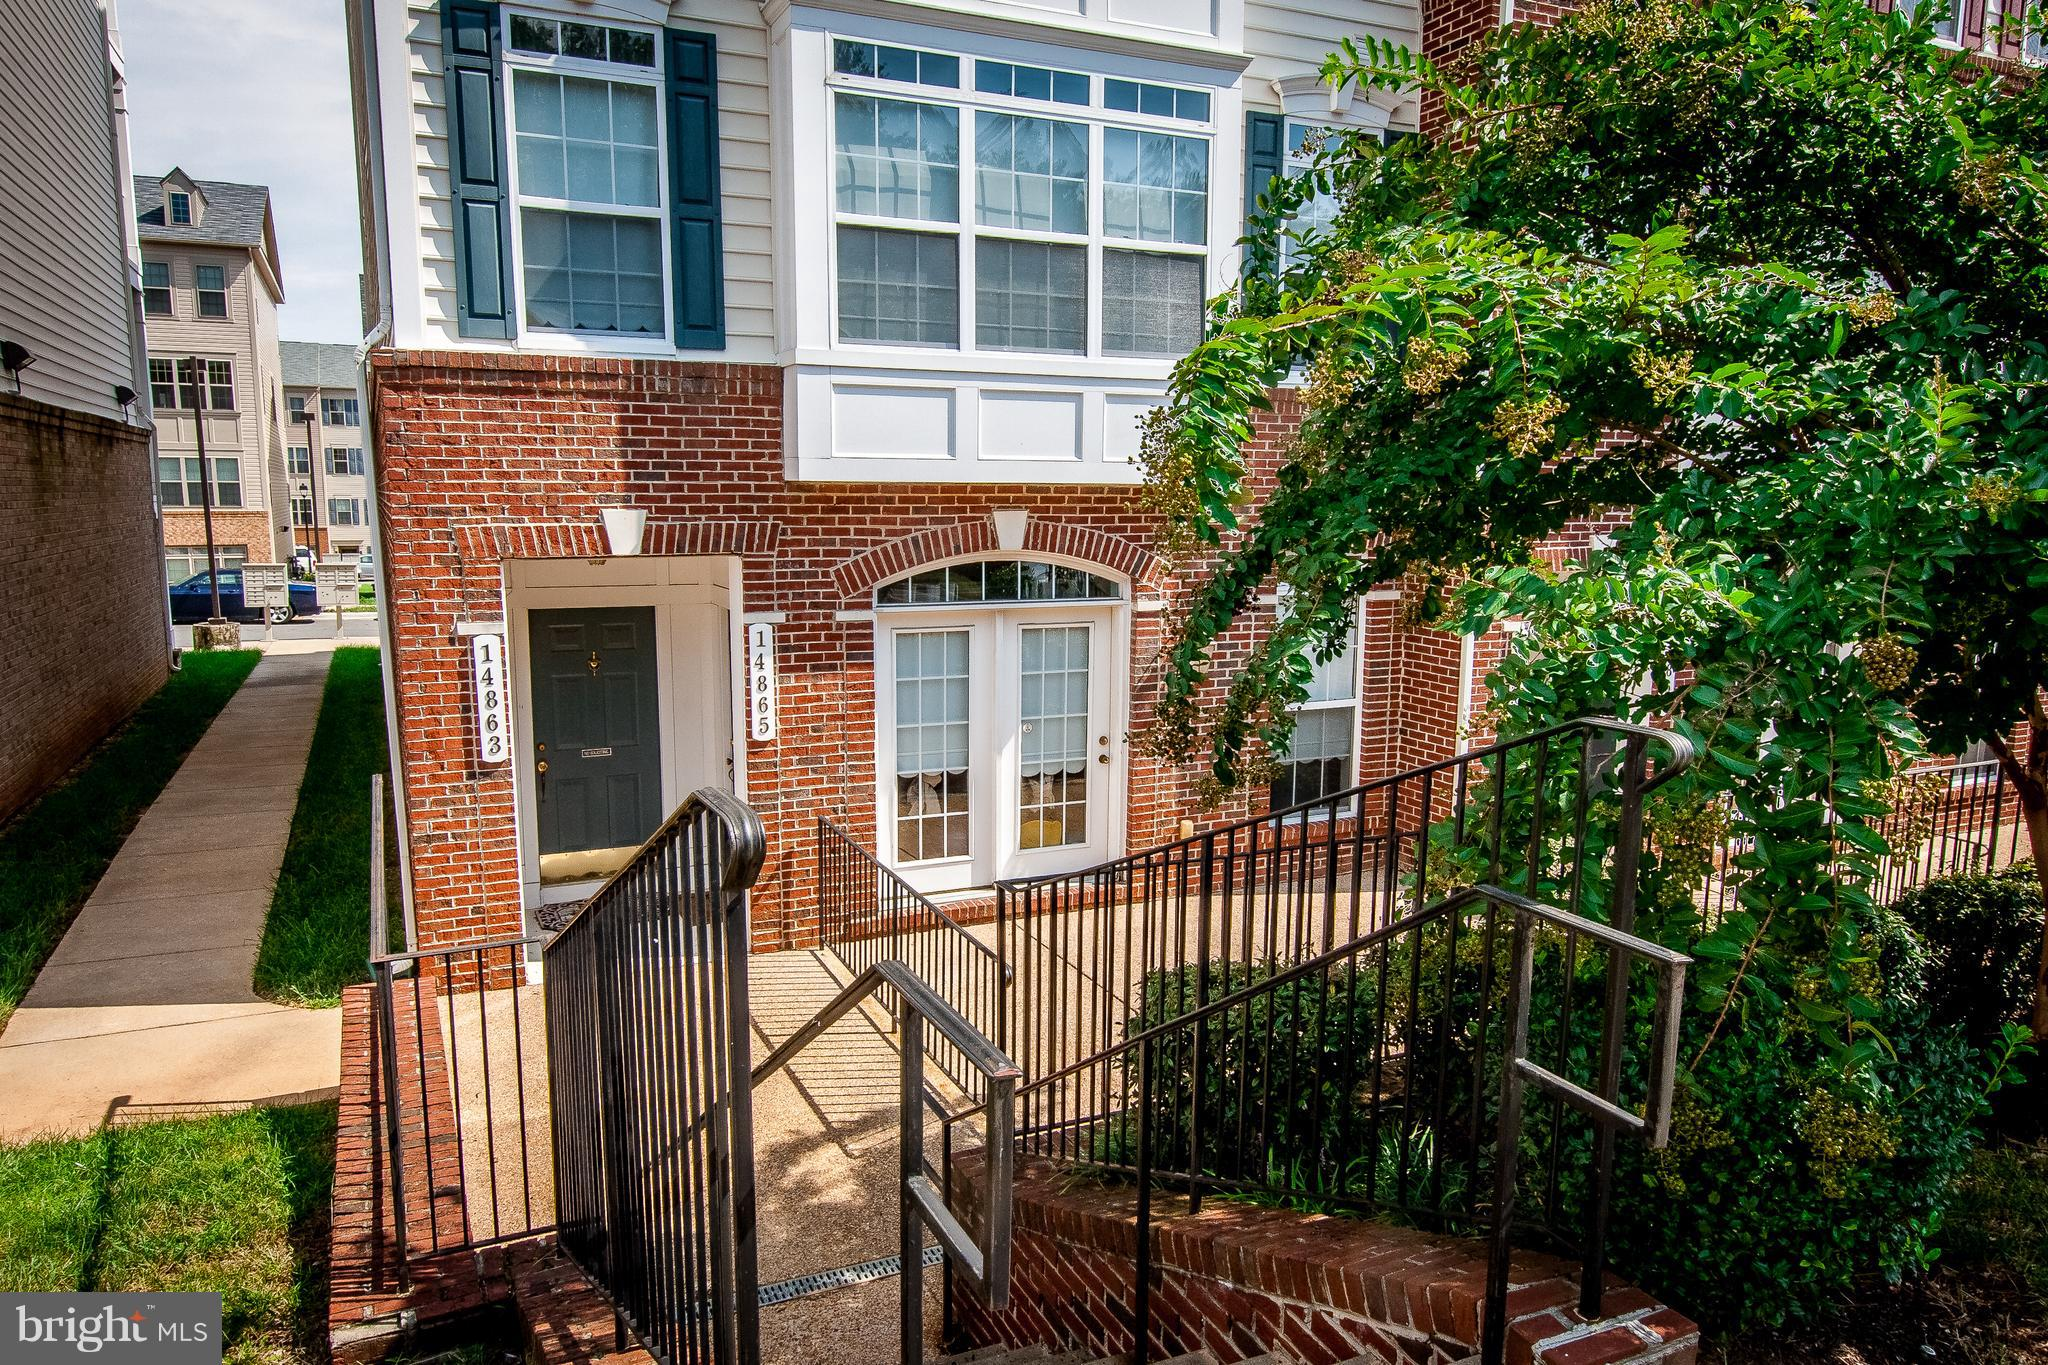 2 level condo living with 1 car garage, huge balcony, 2~ bathrooms, living room (L/L) AND family room (U/L). Street parking right out in front of entrance door. Approx. 5 minutes to I-95. Large master bedroom and bath with soaking tub. Low condo fees.